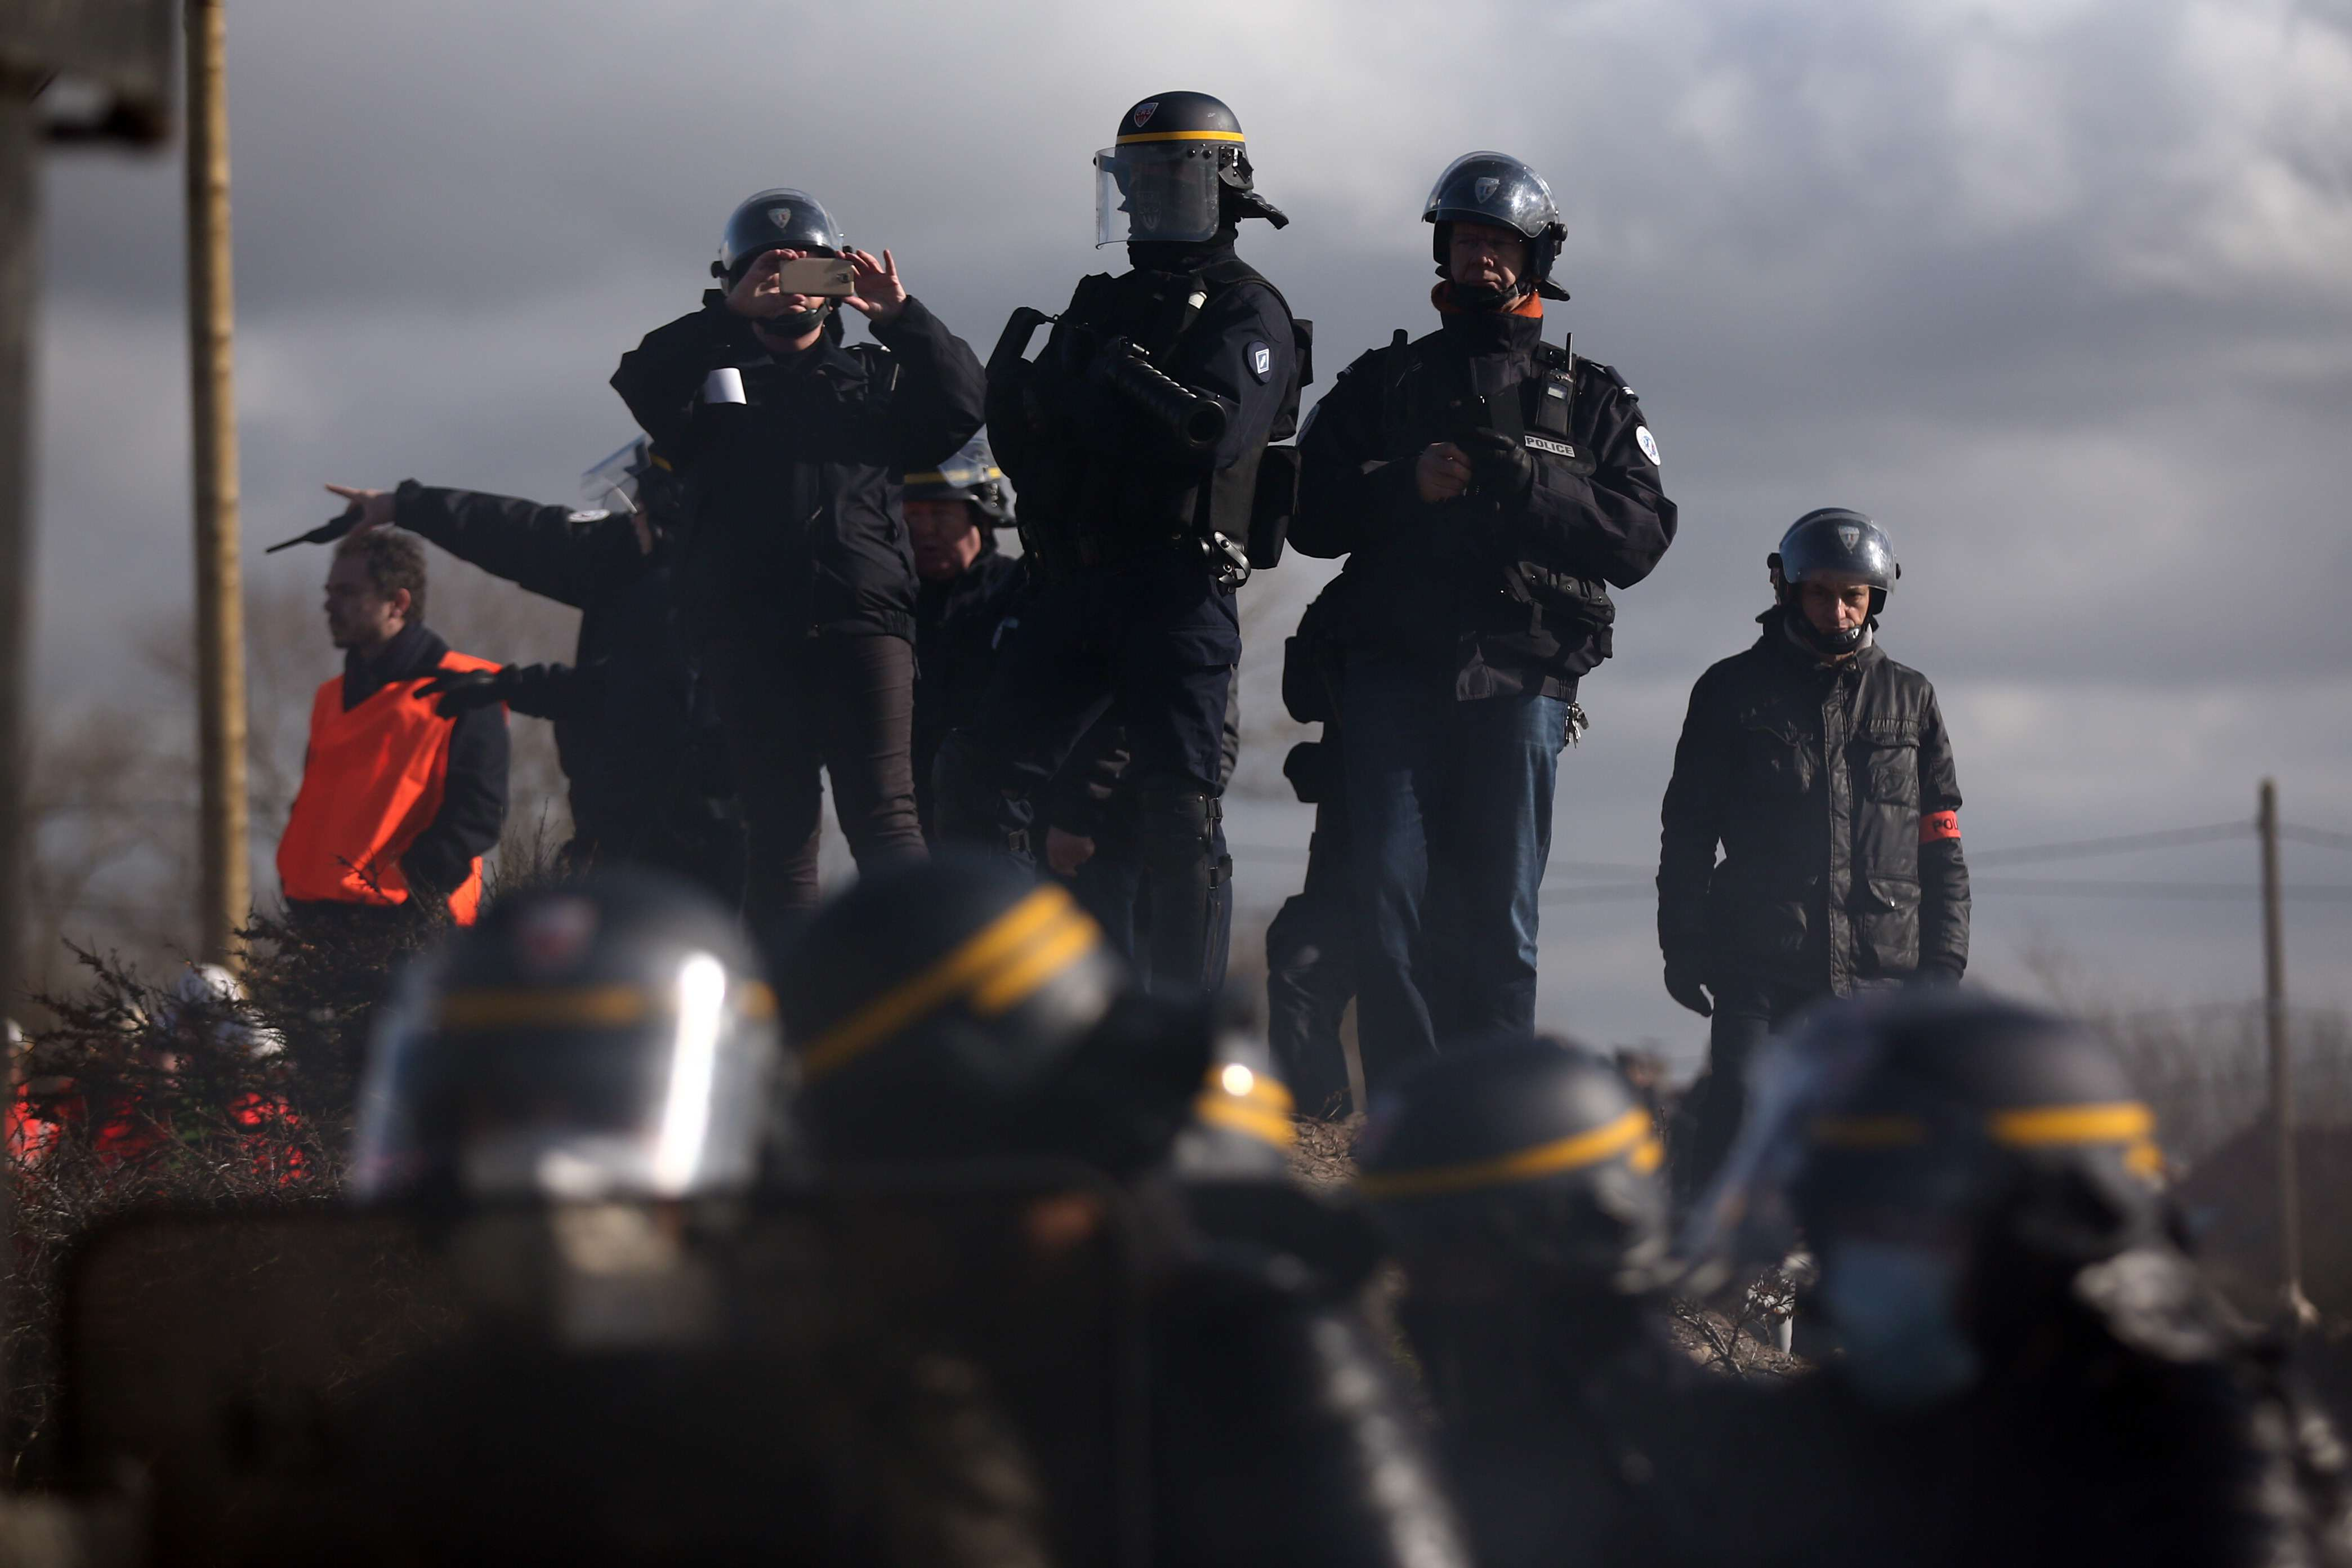 UK To Build 13 Foot Wall To Contain Migrants In Calais calais2